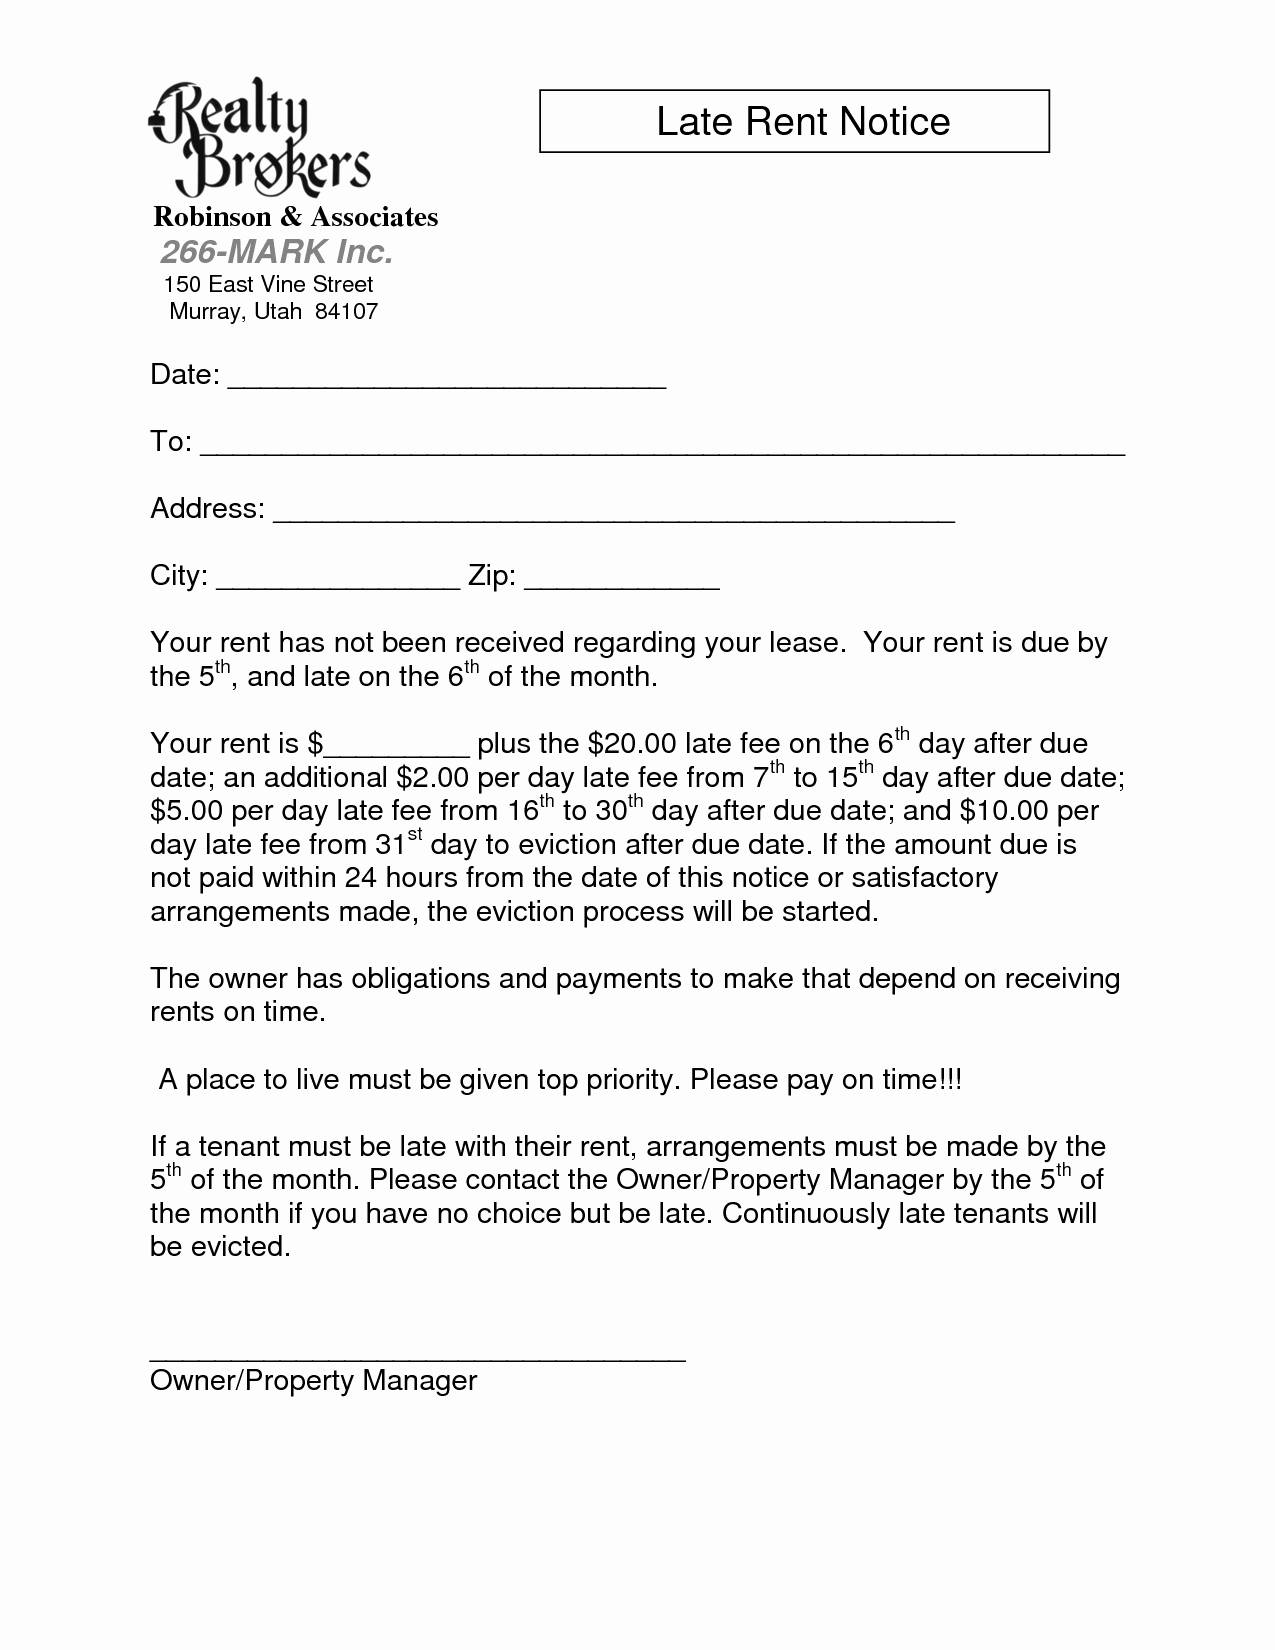 Late Rent Letter Template - Notice Letter to Landlord Template Awesome 19 New Late Rent Letter